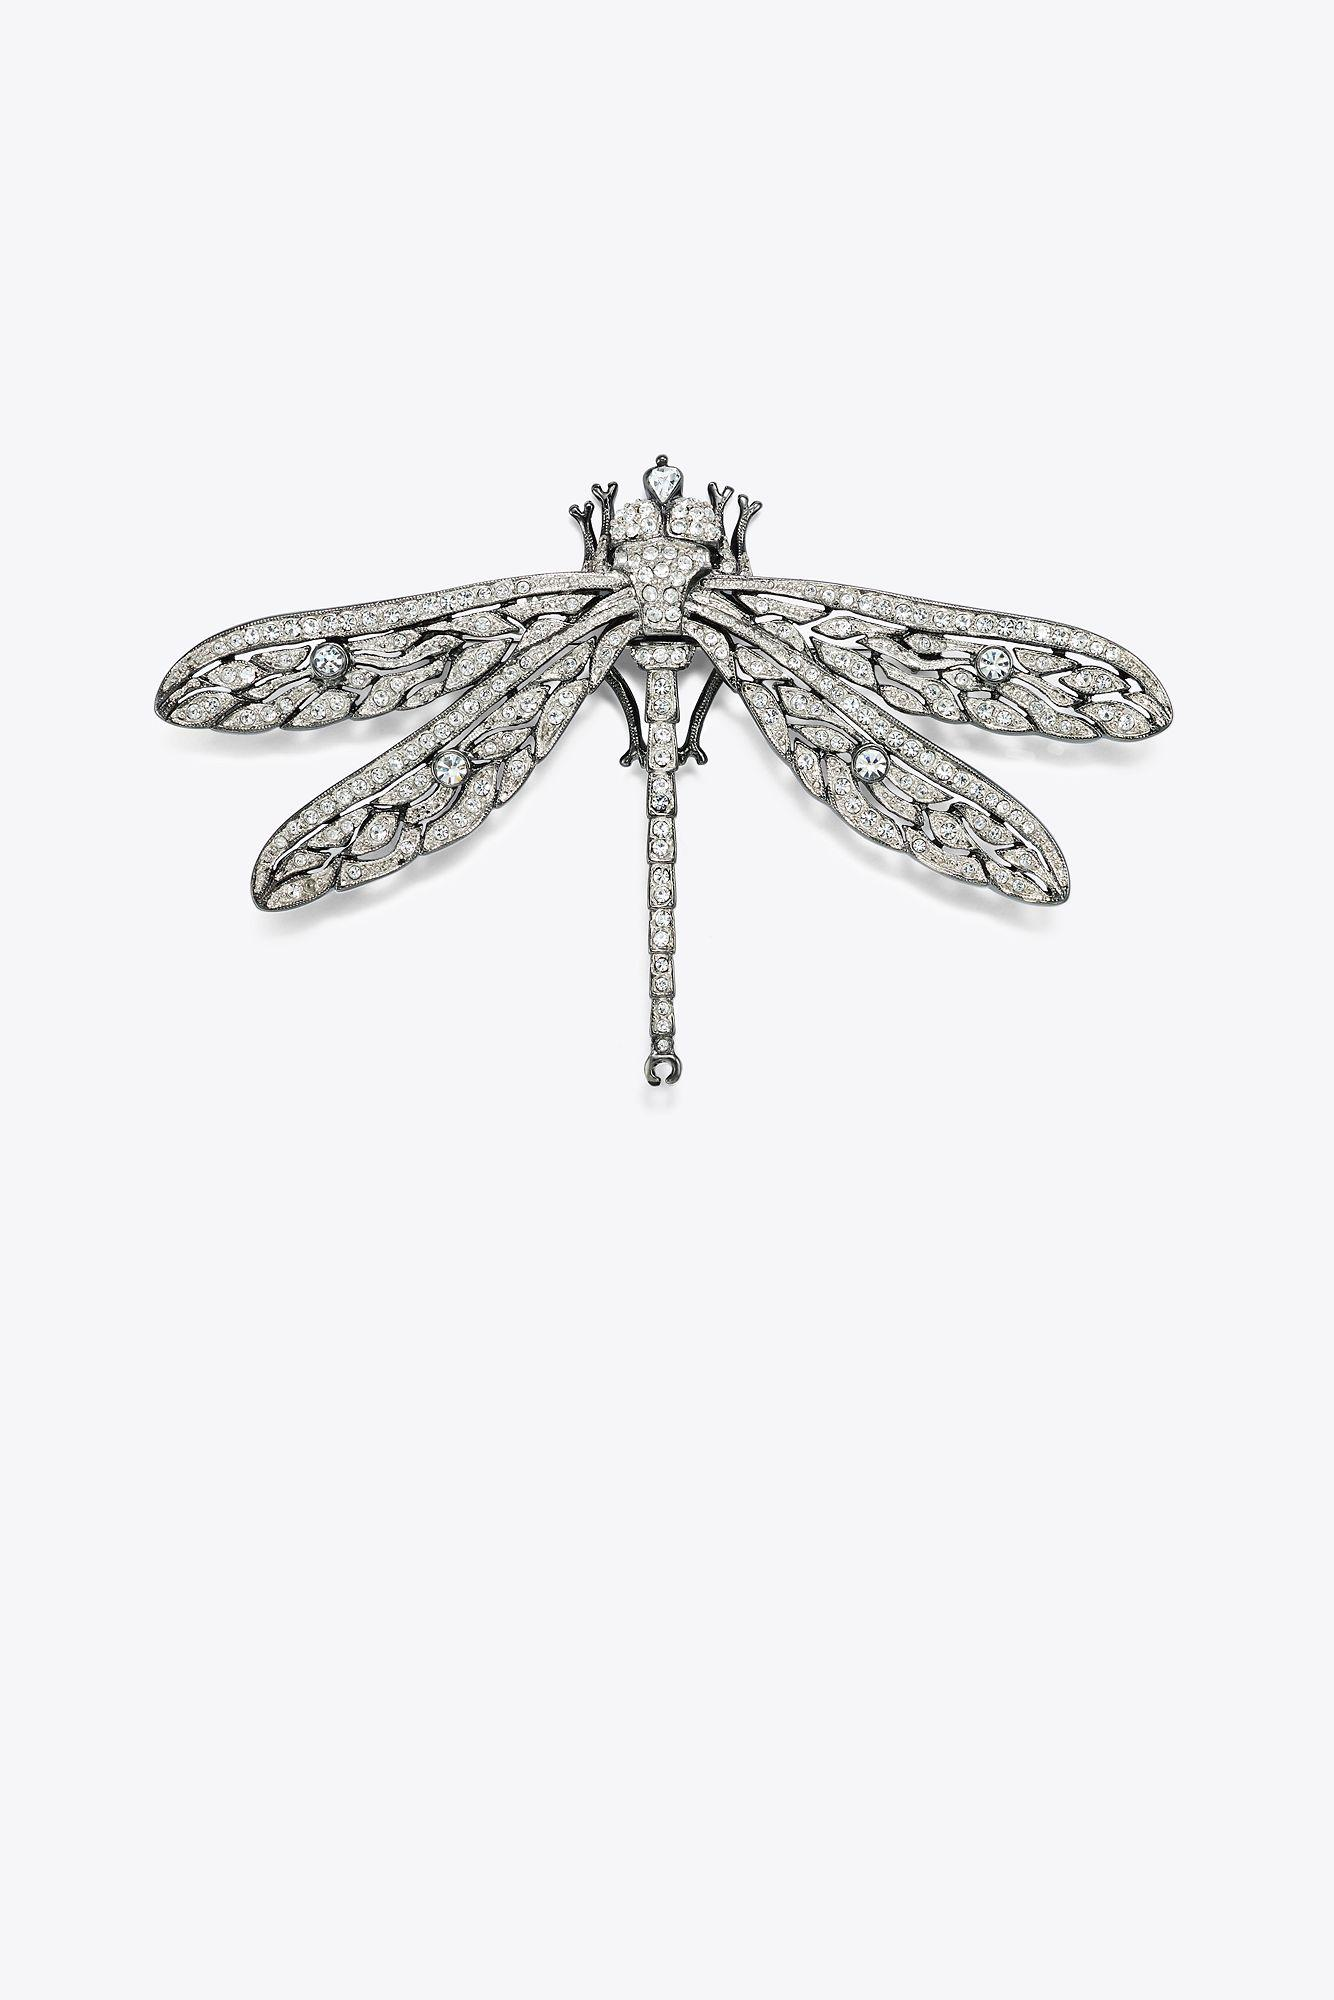 Tory Burch. Women's Metallic Kenneth Jay Lane For Dragonfly Pin